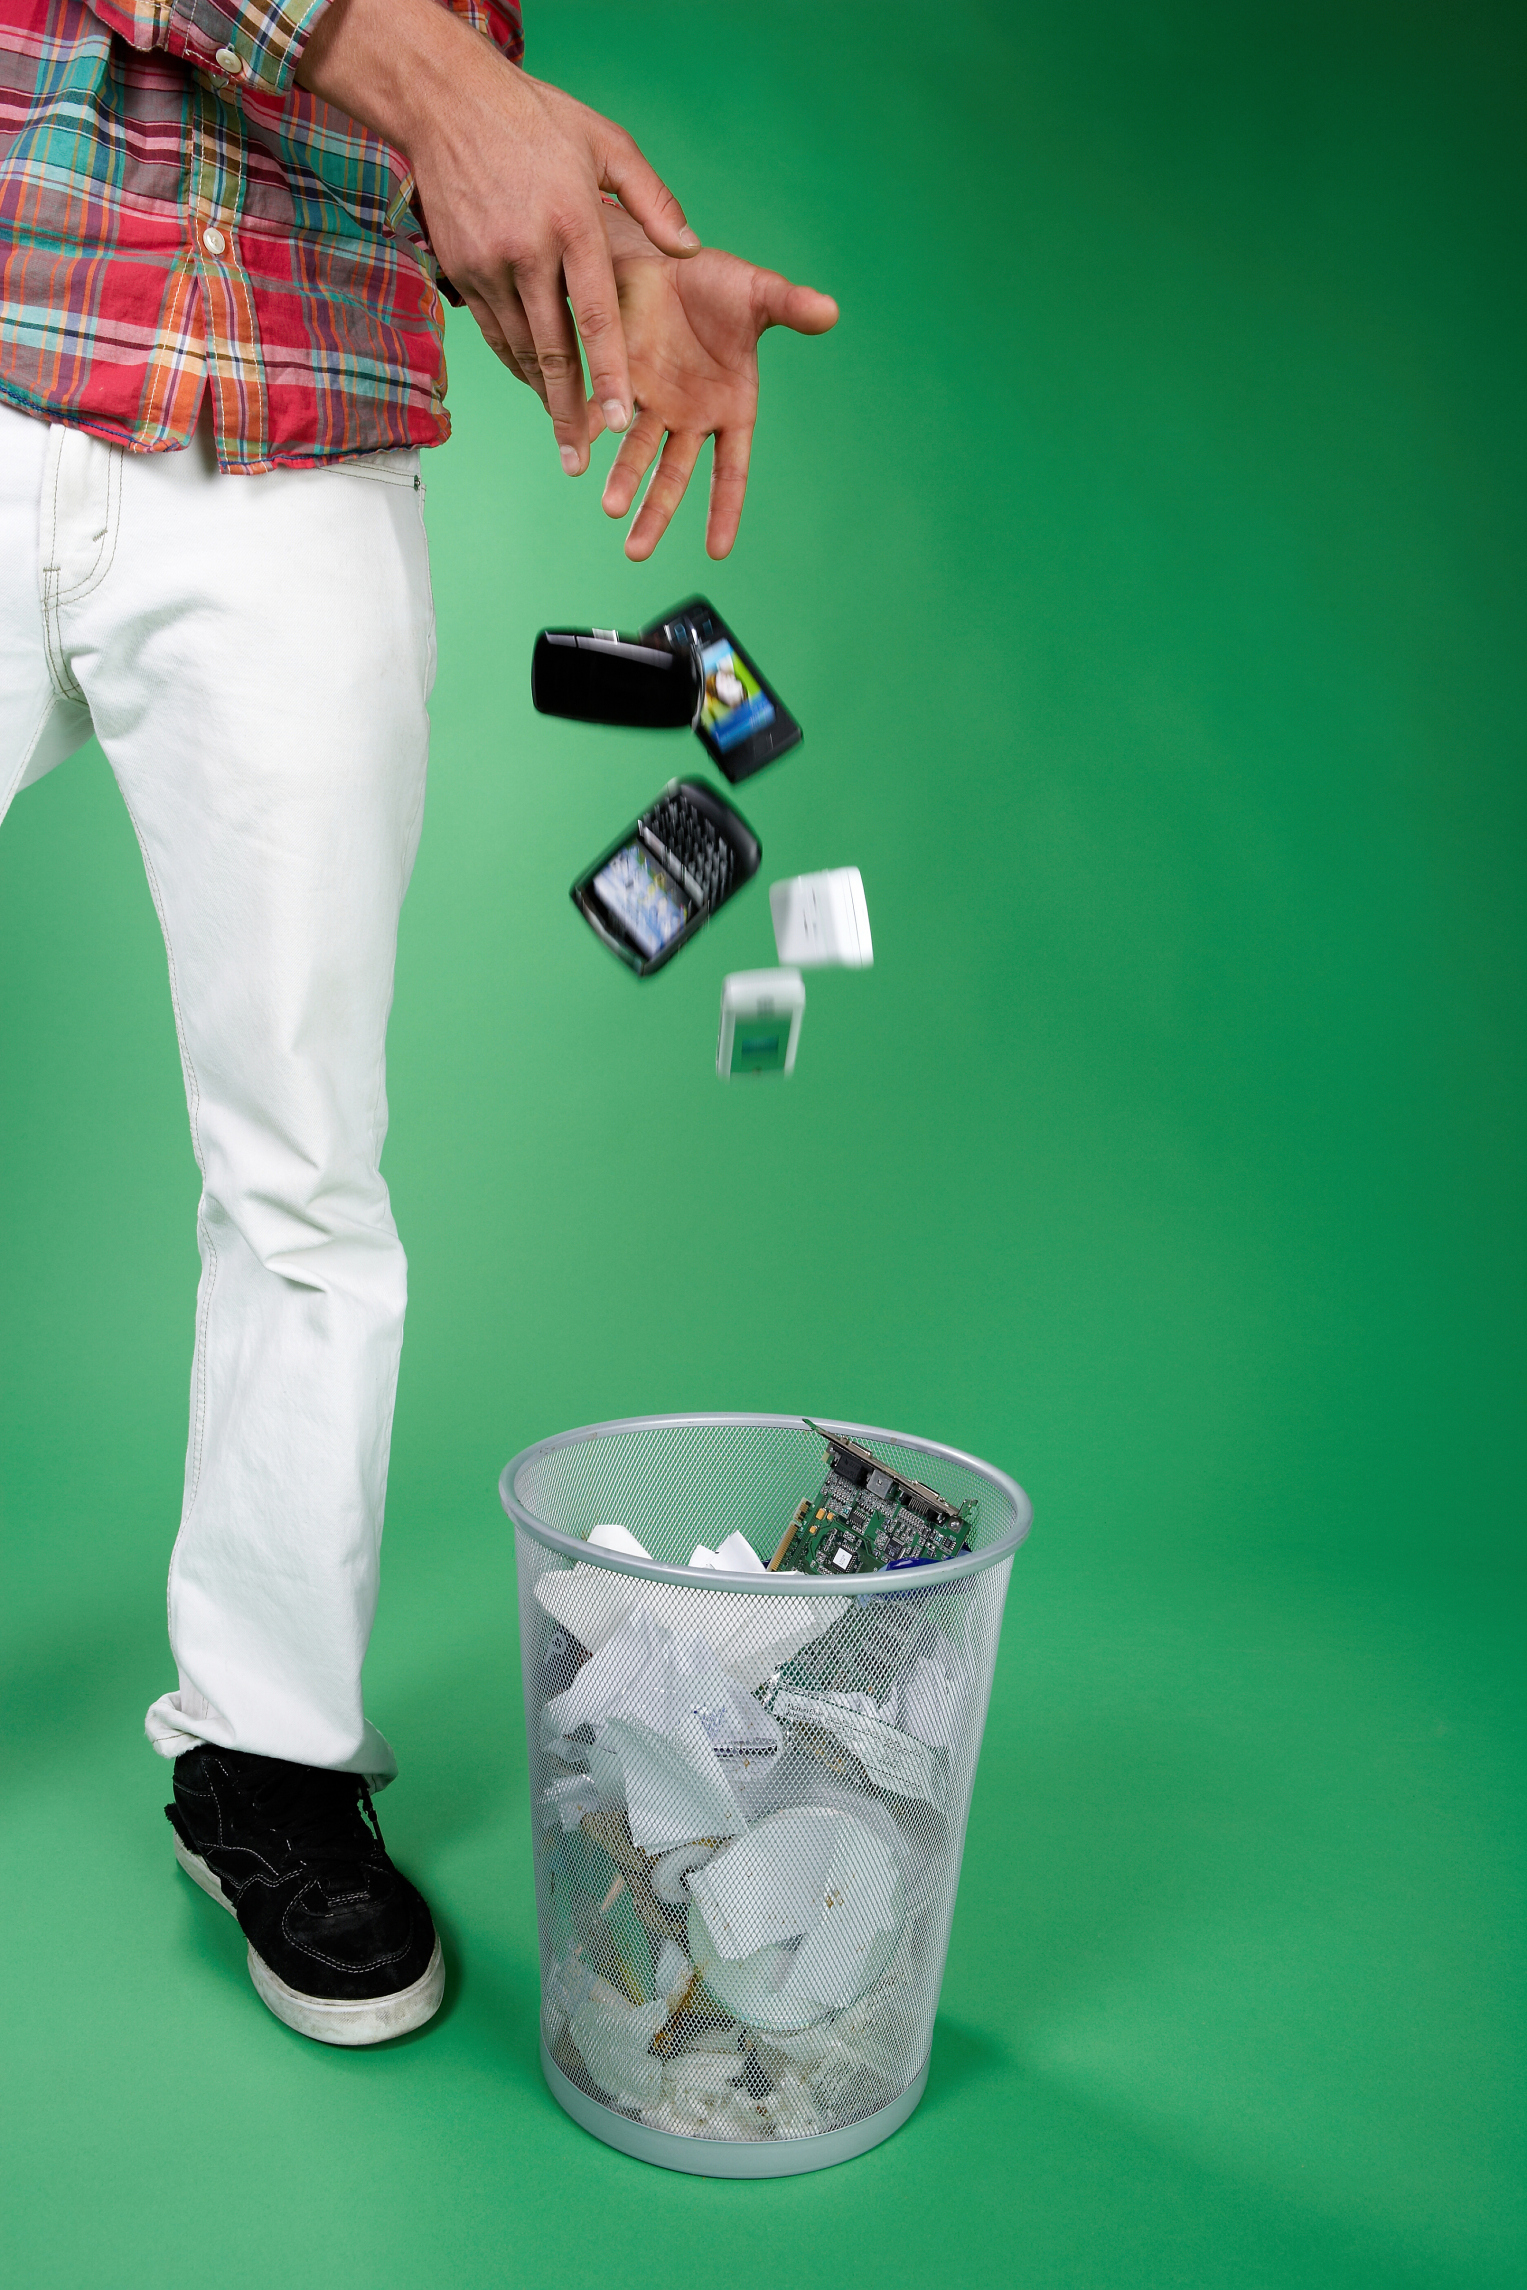 Phone and Electronics Tossed into Trashcan